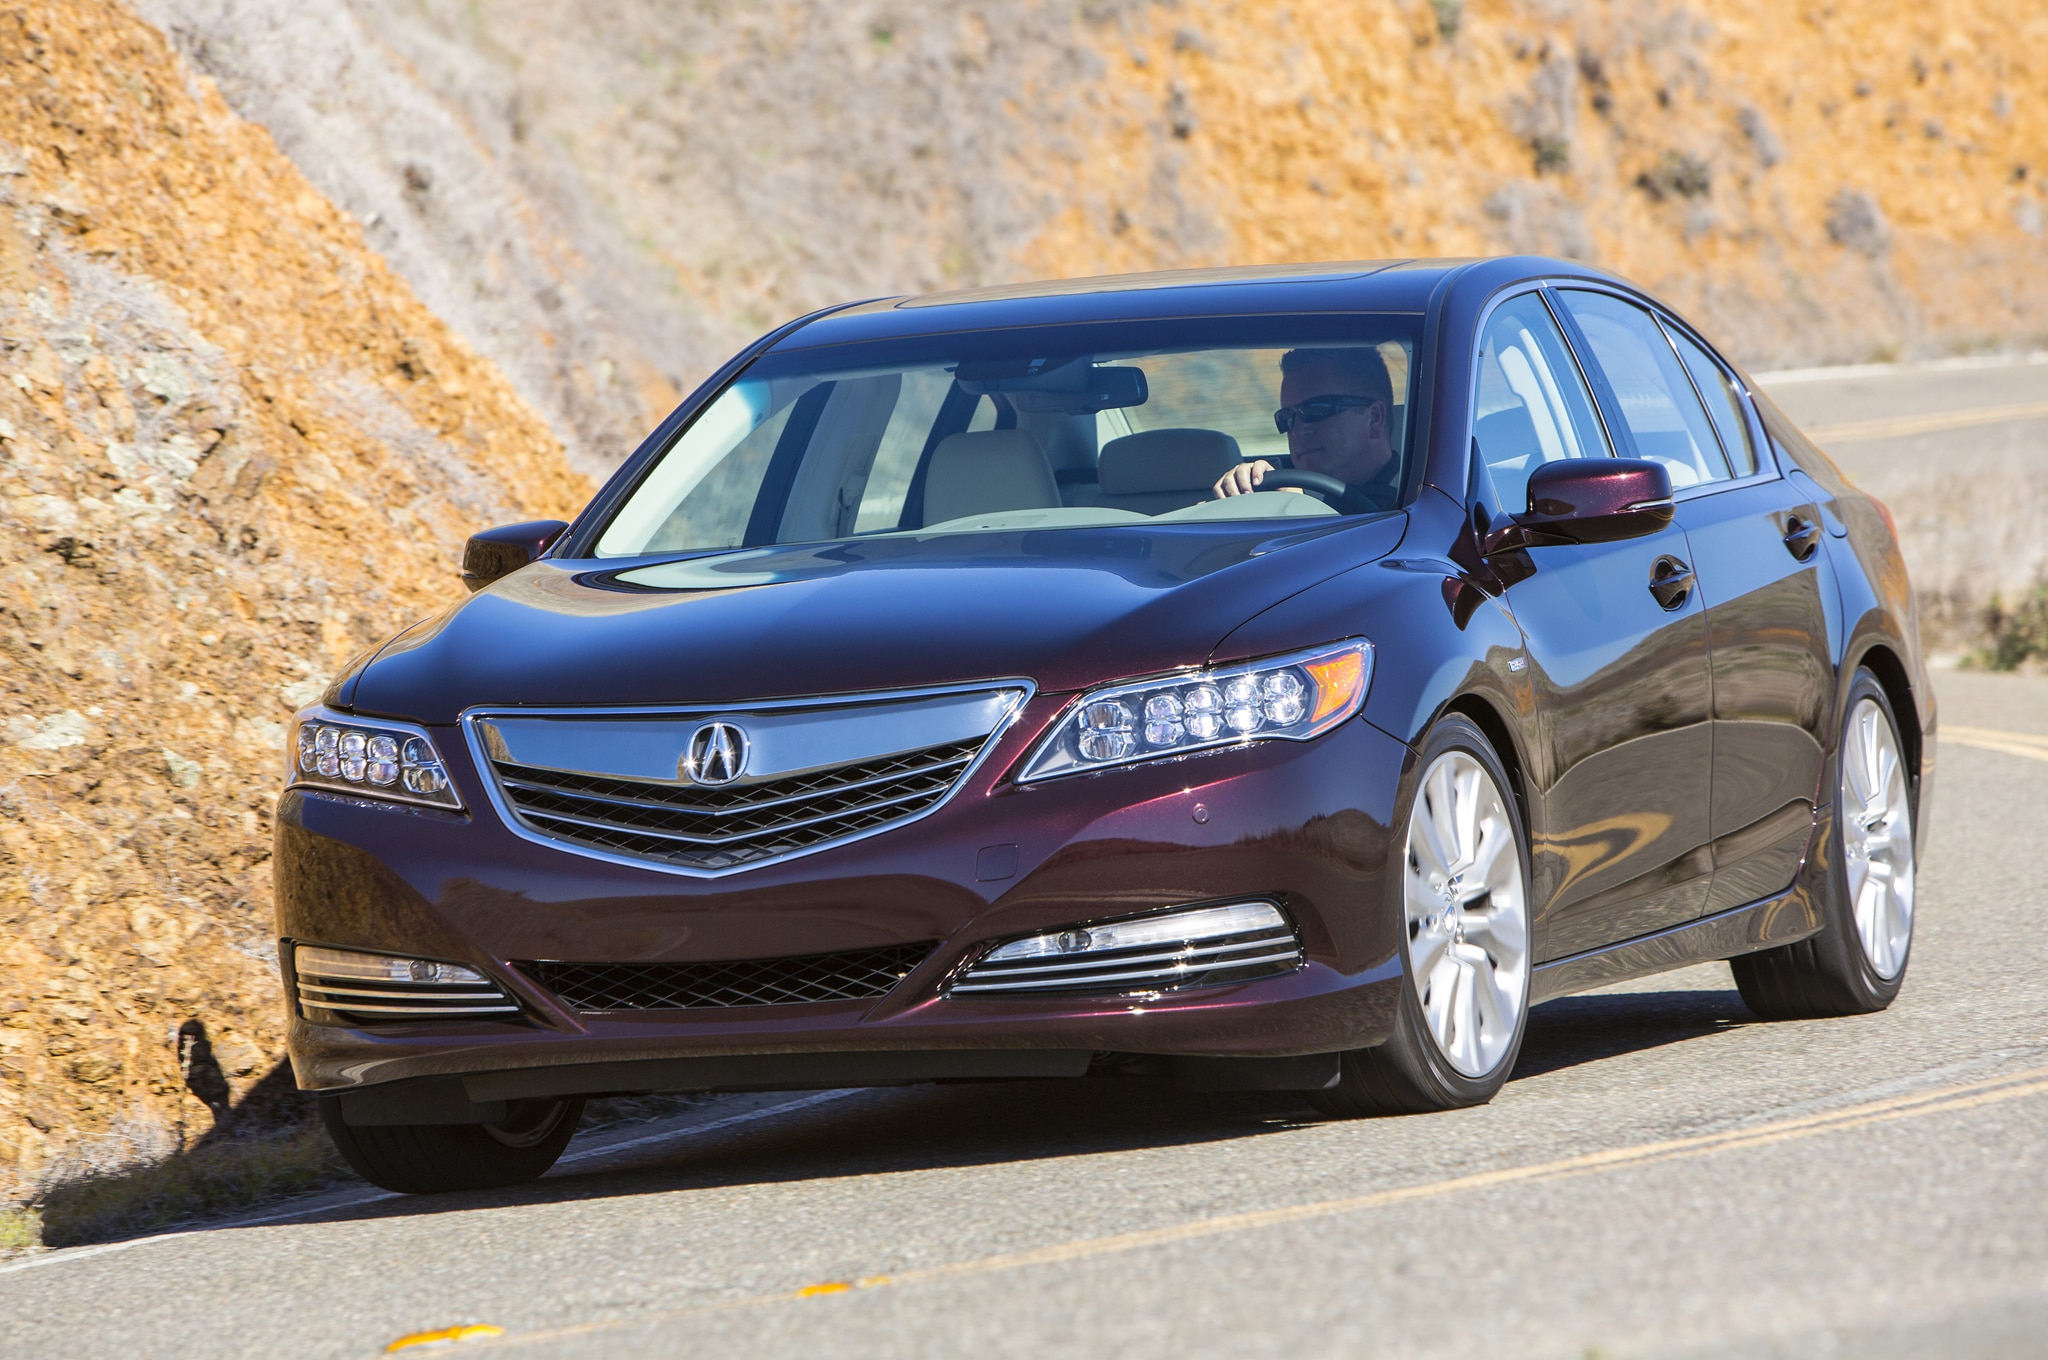 park sale edgewater tech rlx w acura stock c near used for htm